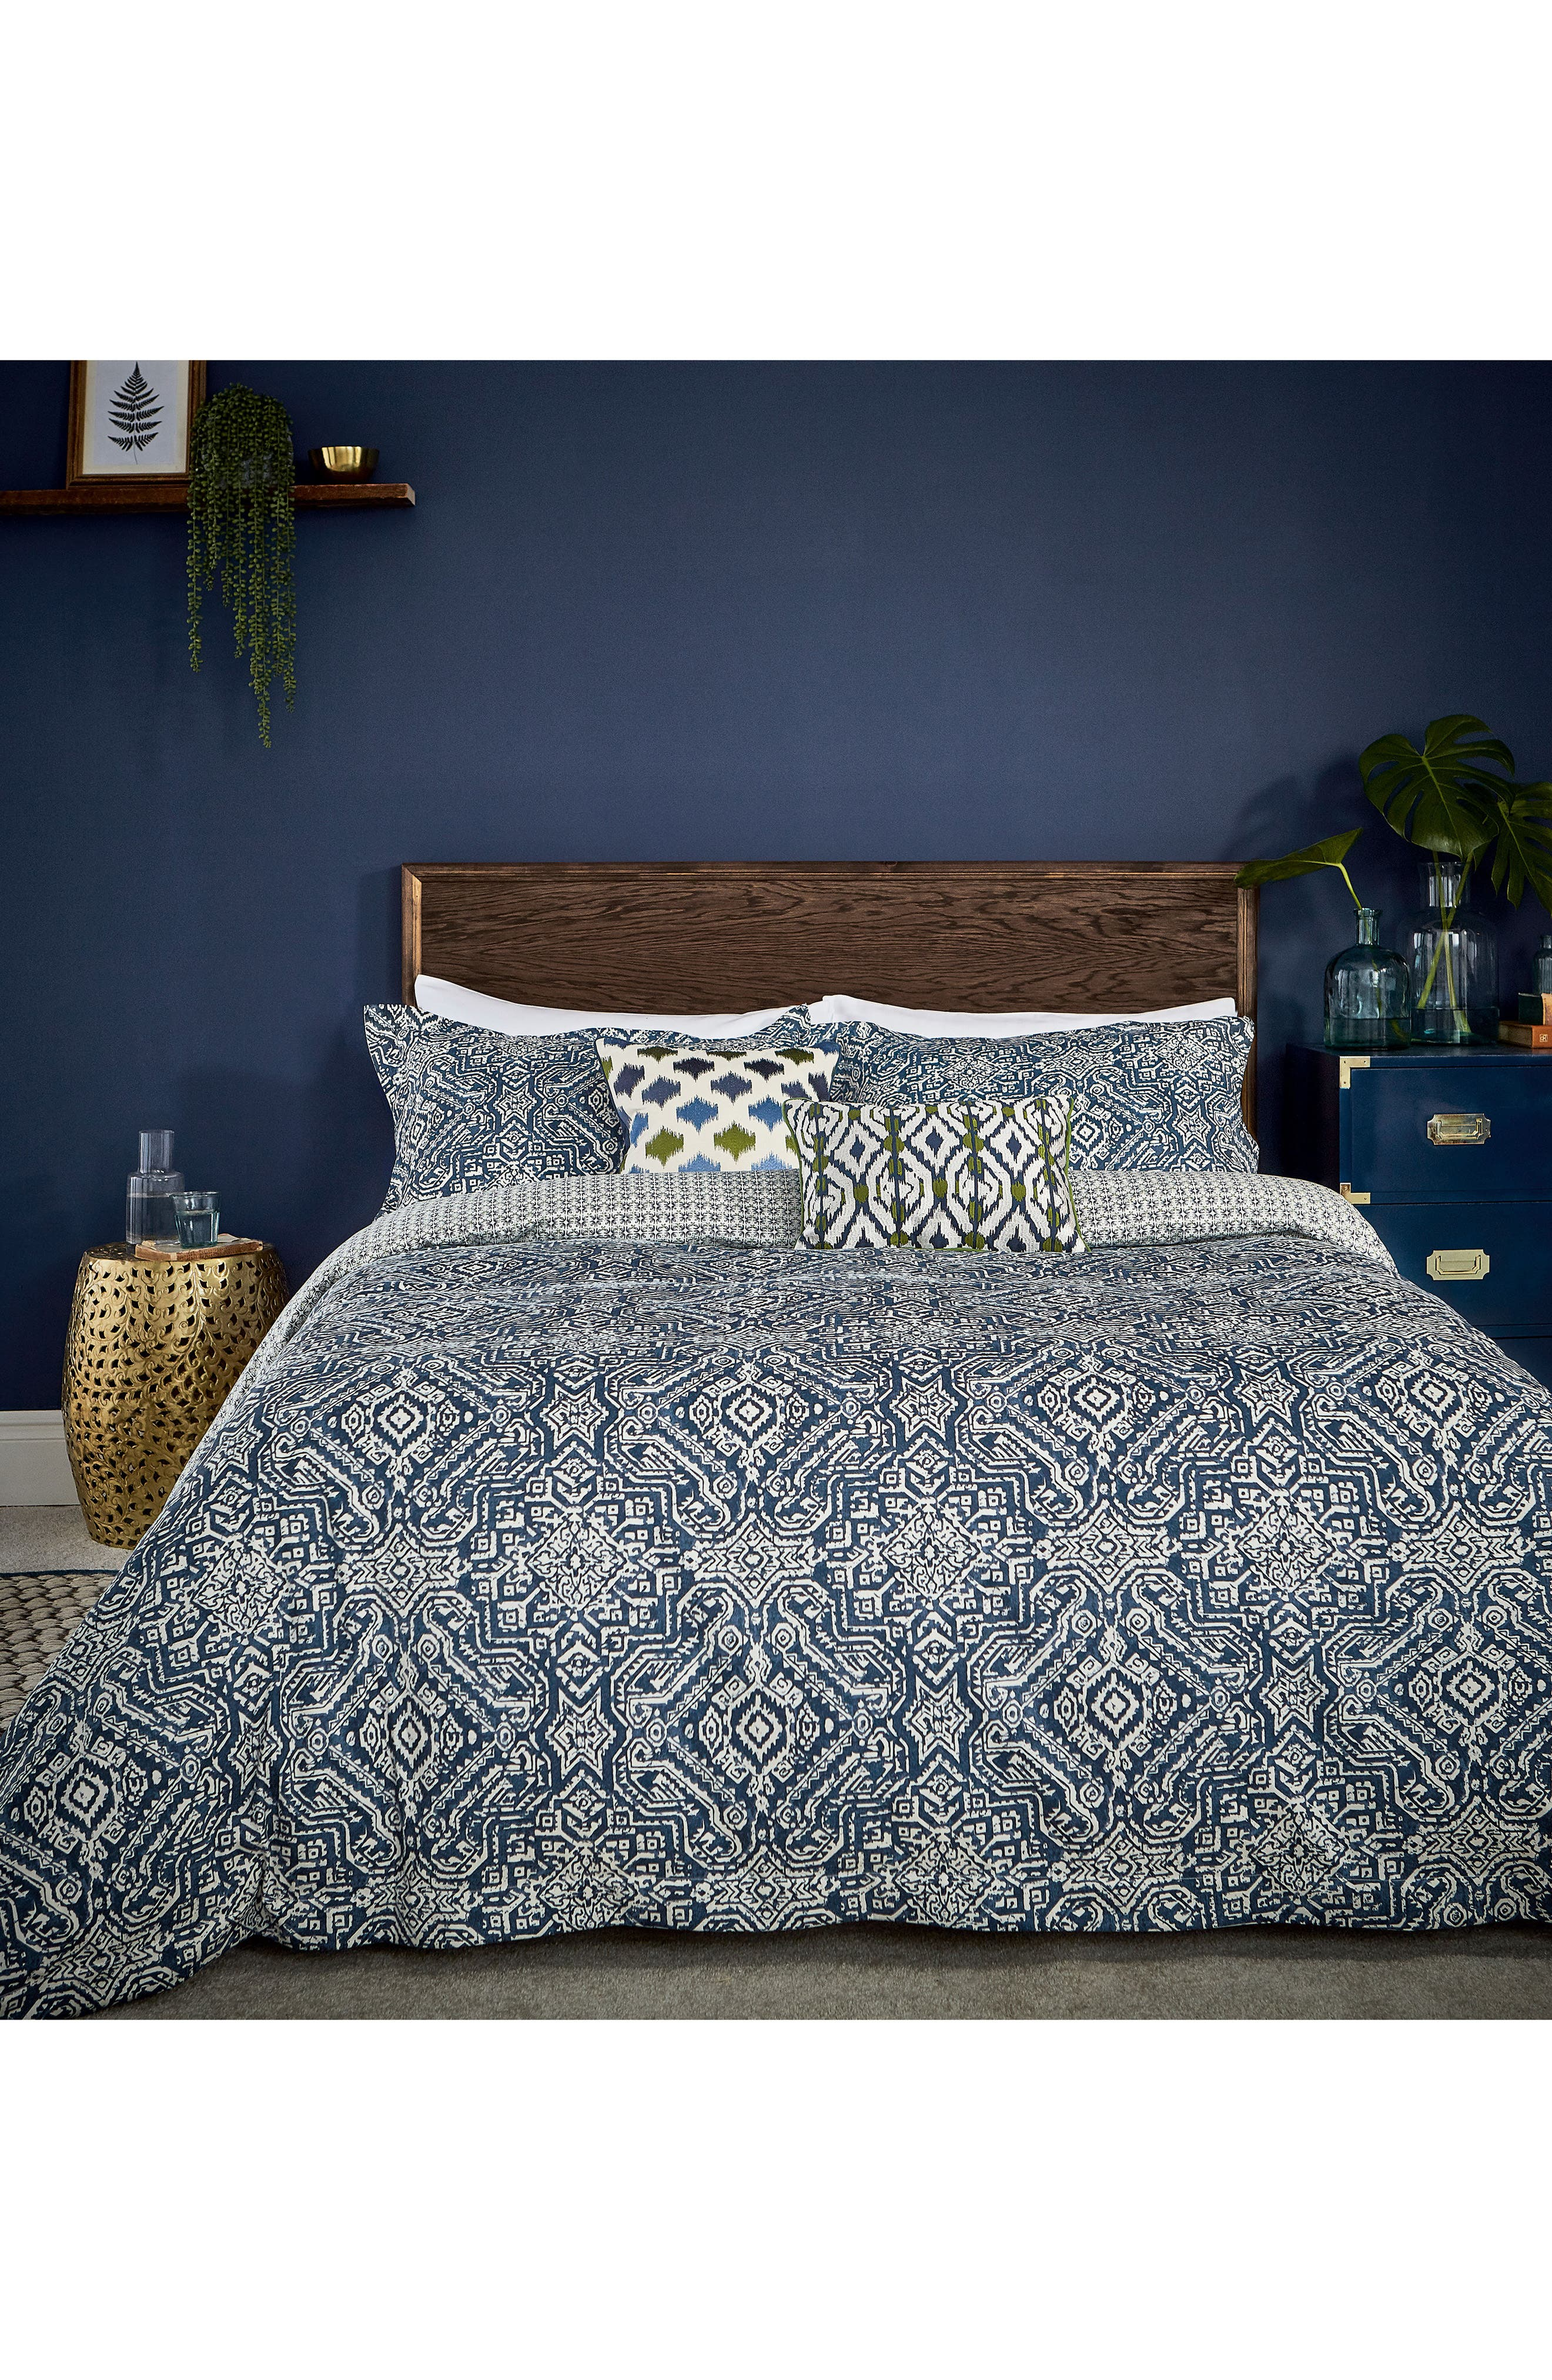 Bedeck Juma Comforter Sham  Accent Pillow Set Size King  Blue